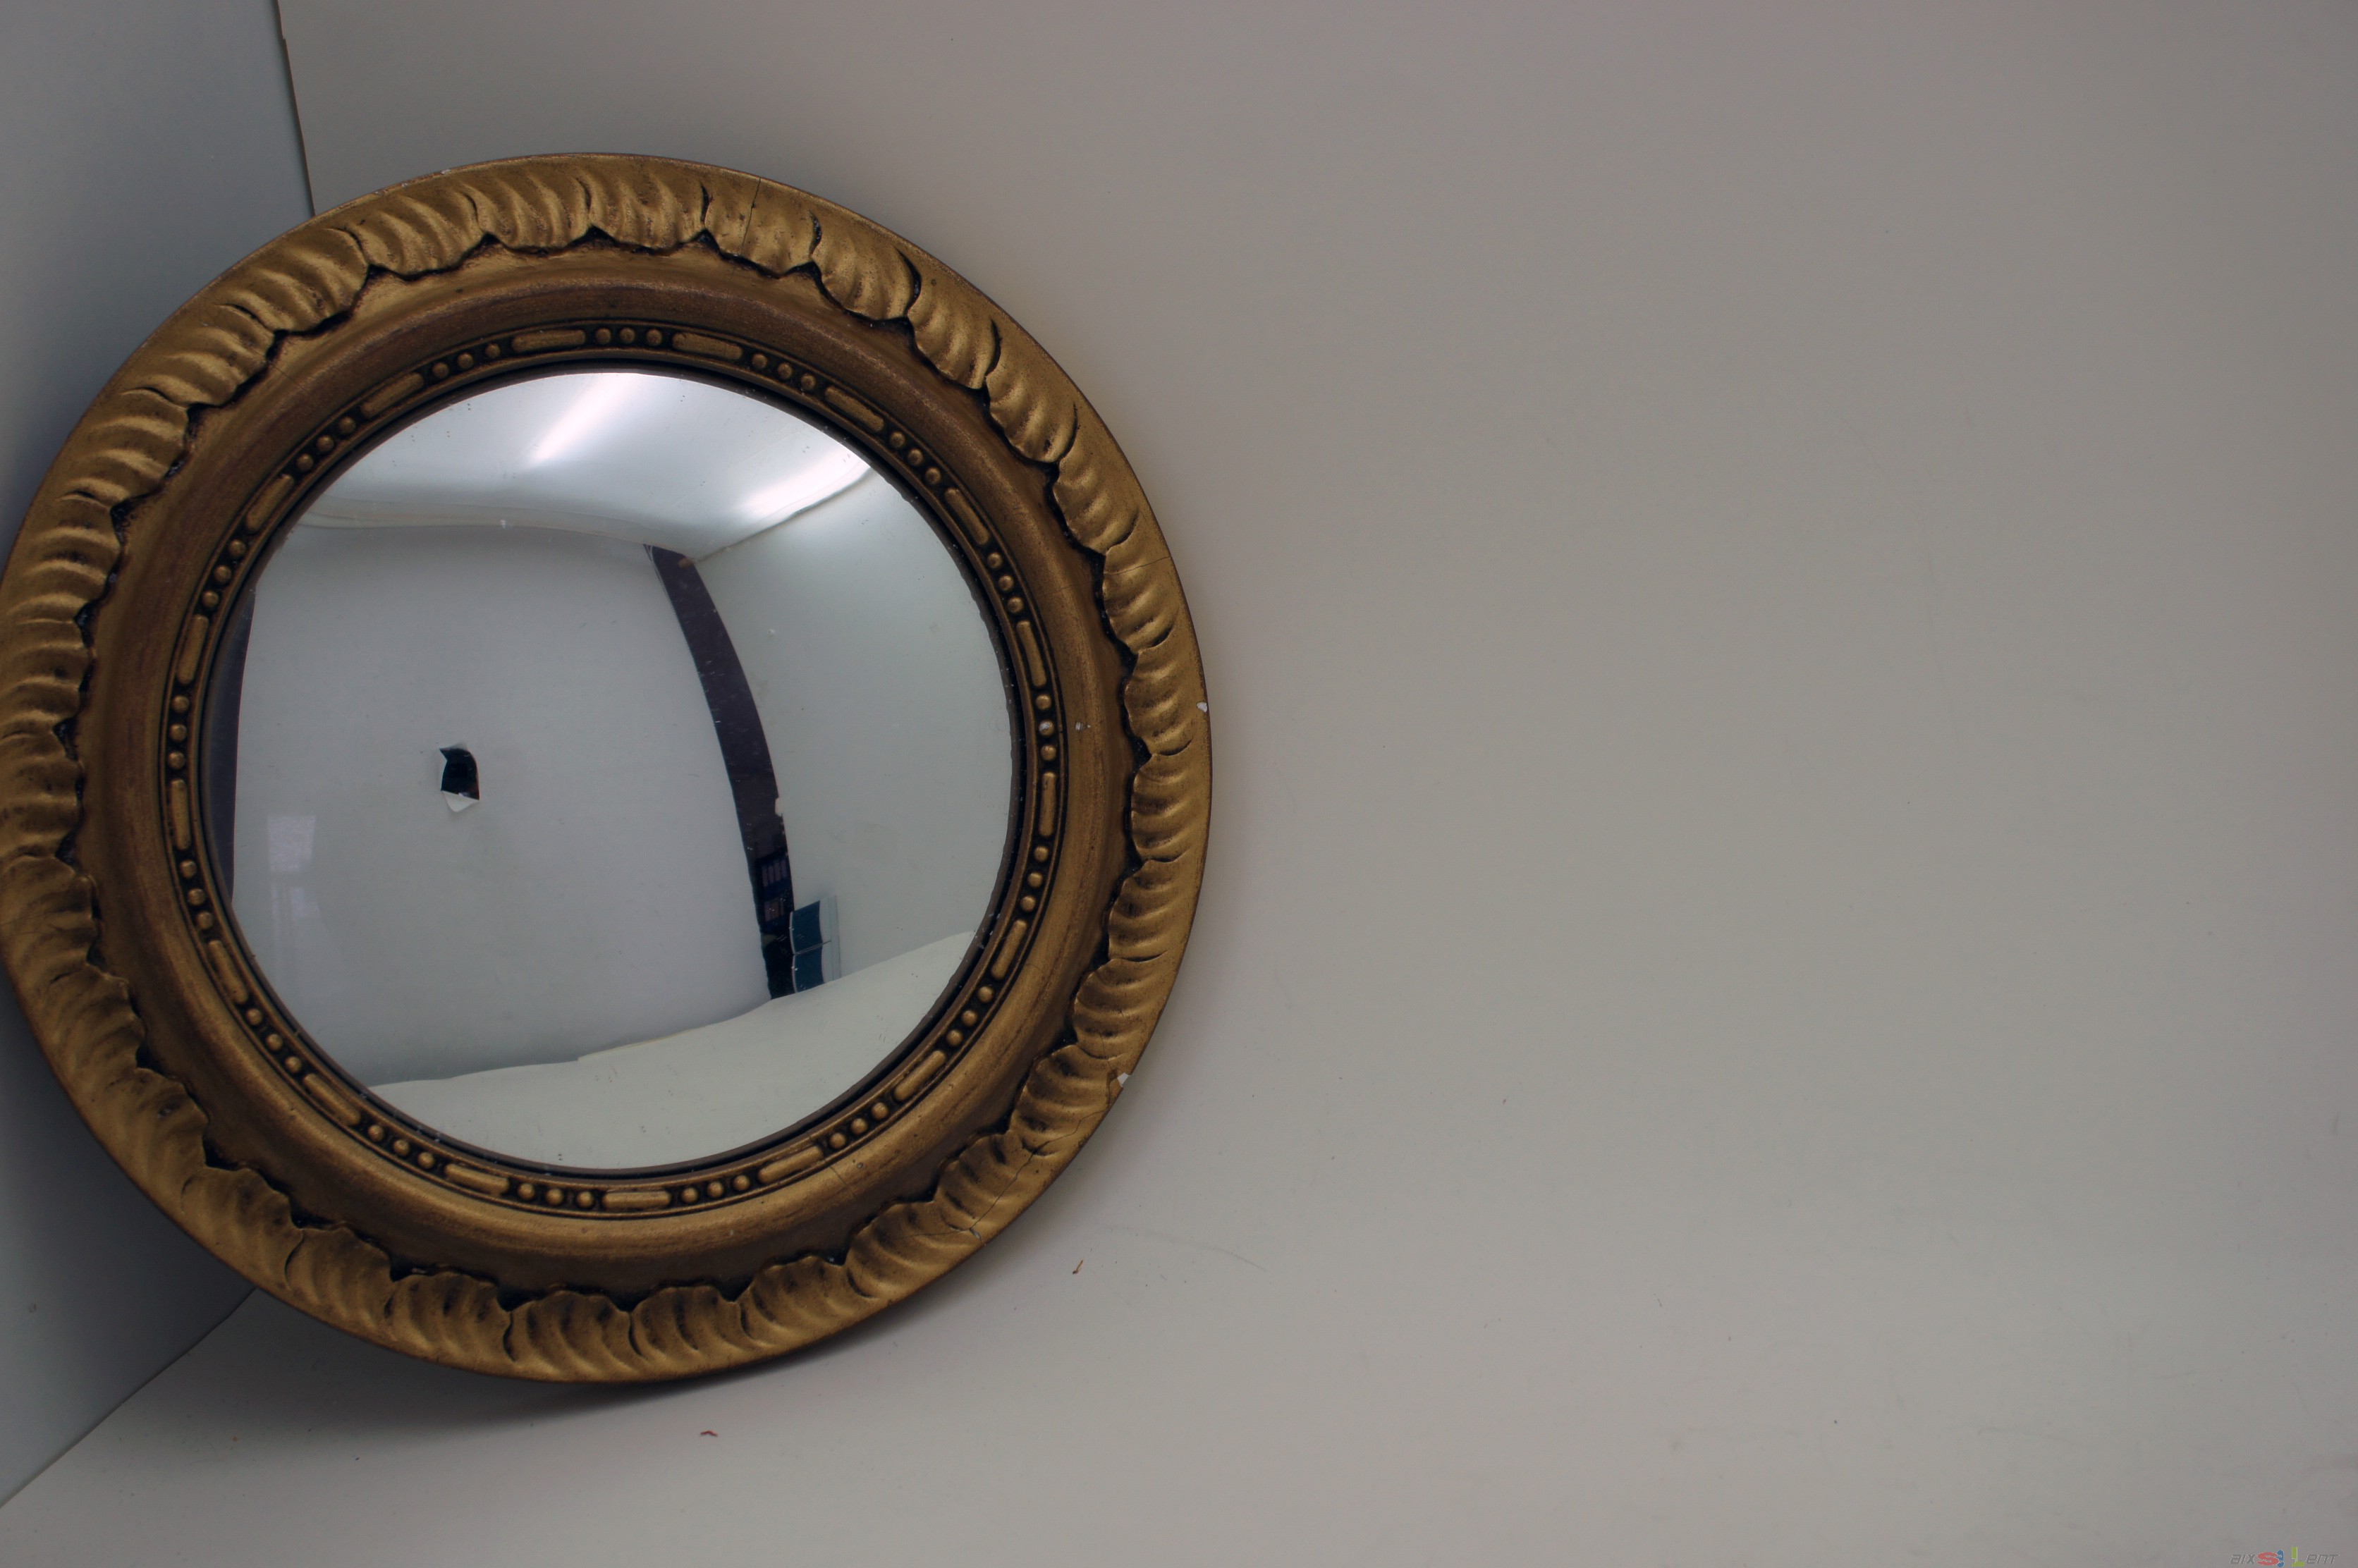 antique convex good condition gold frame mirror wood frame decorating ebay. Black Bedroom Furniture Sets. Home Design Ideas